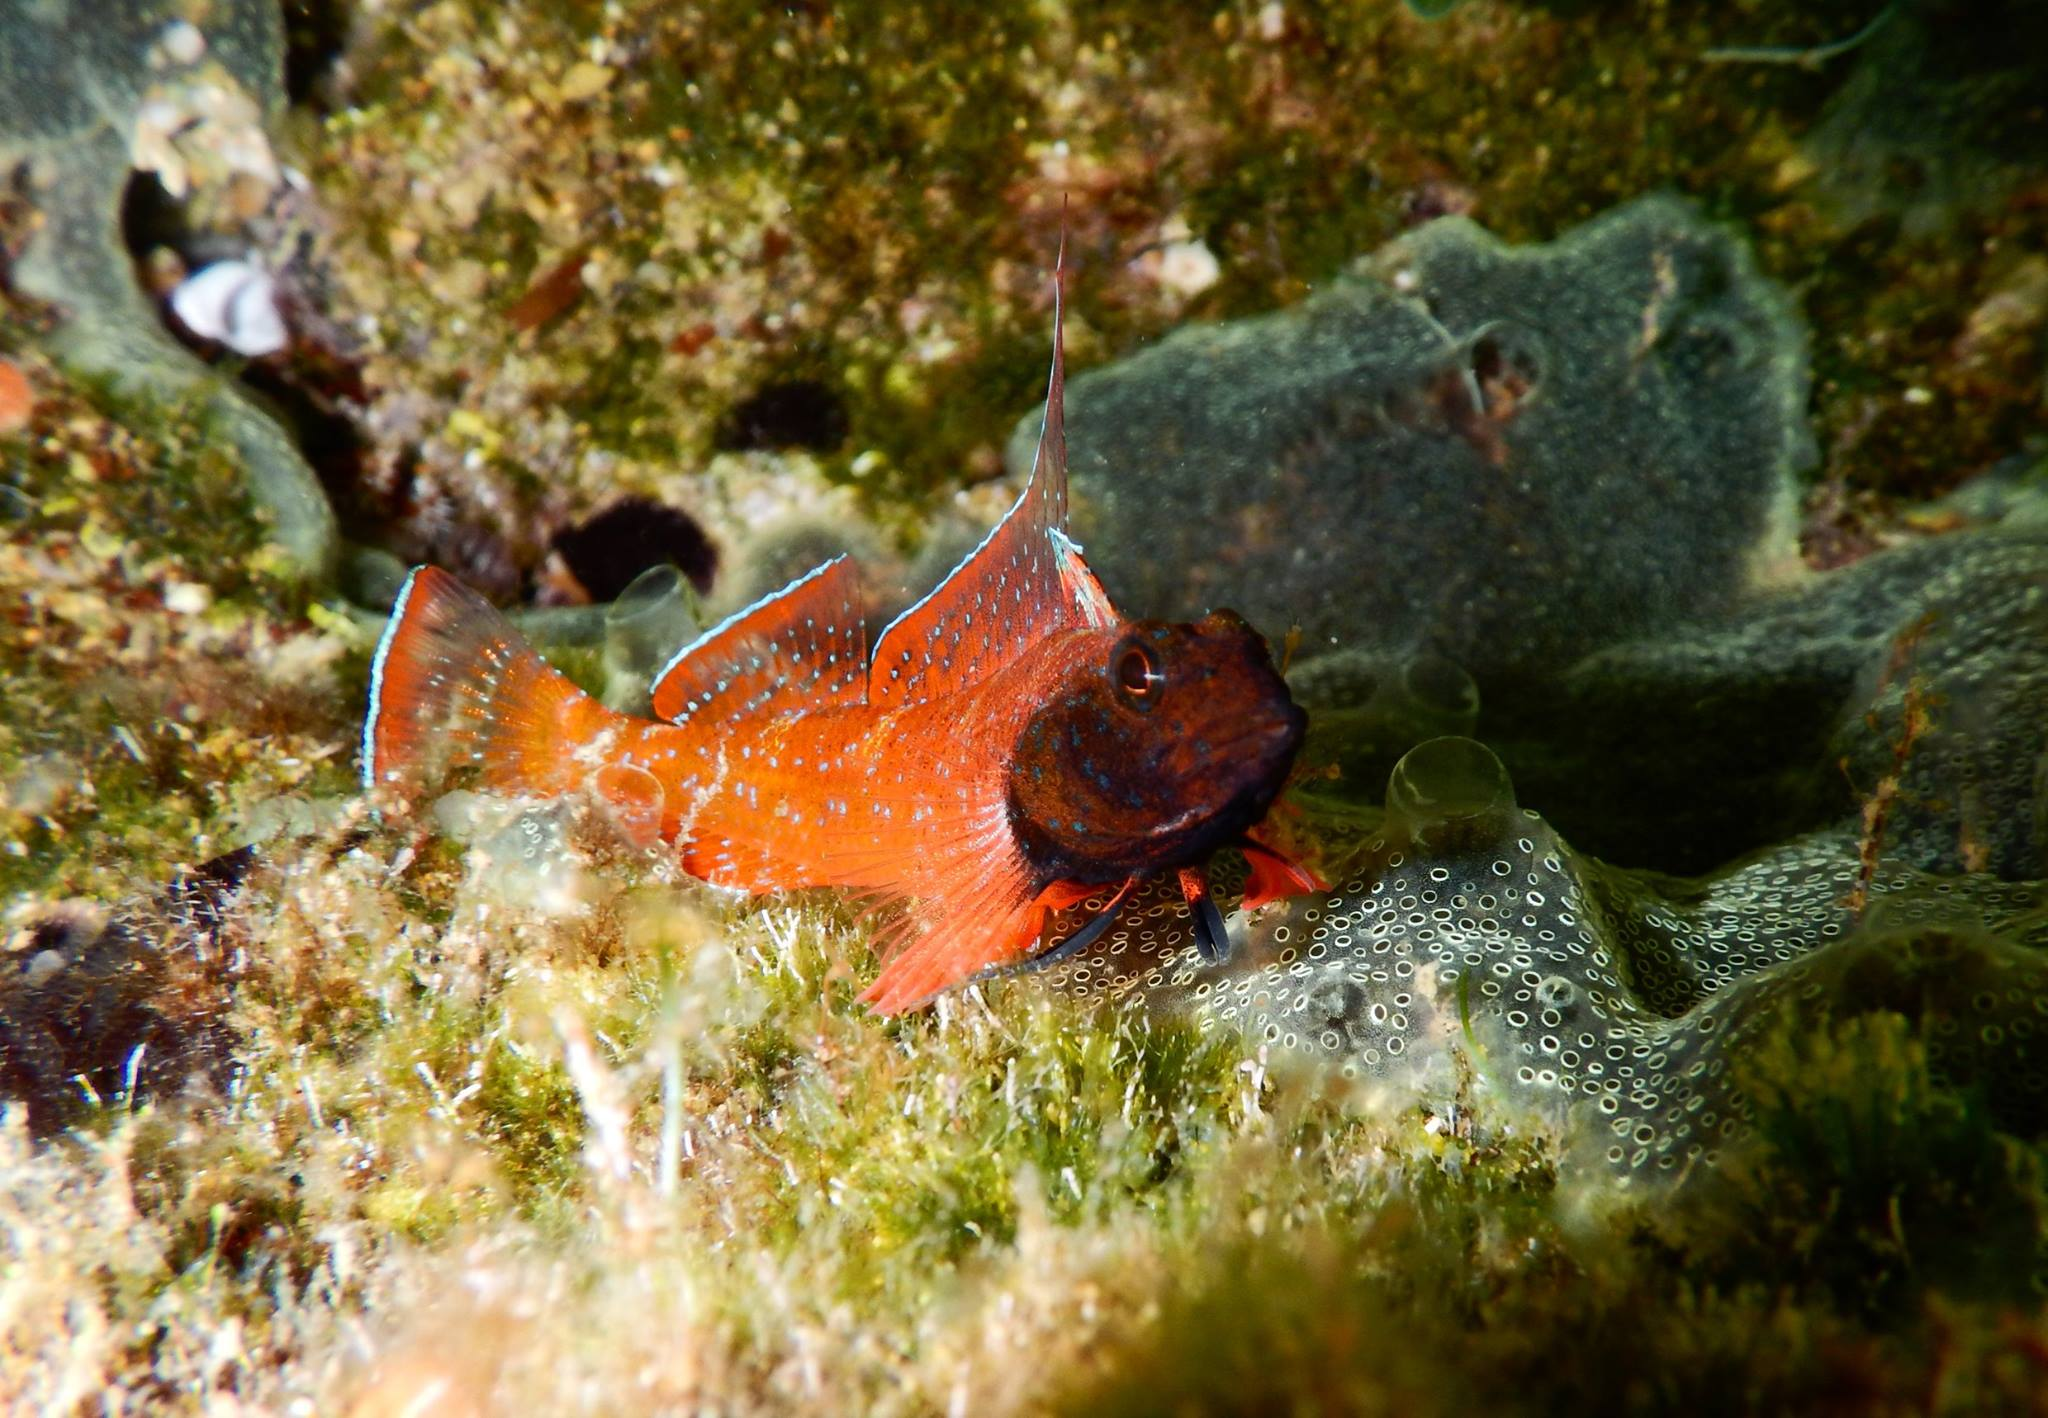 Blackfaced Blenny captured by Stay Wet diving center.